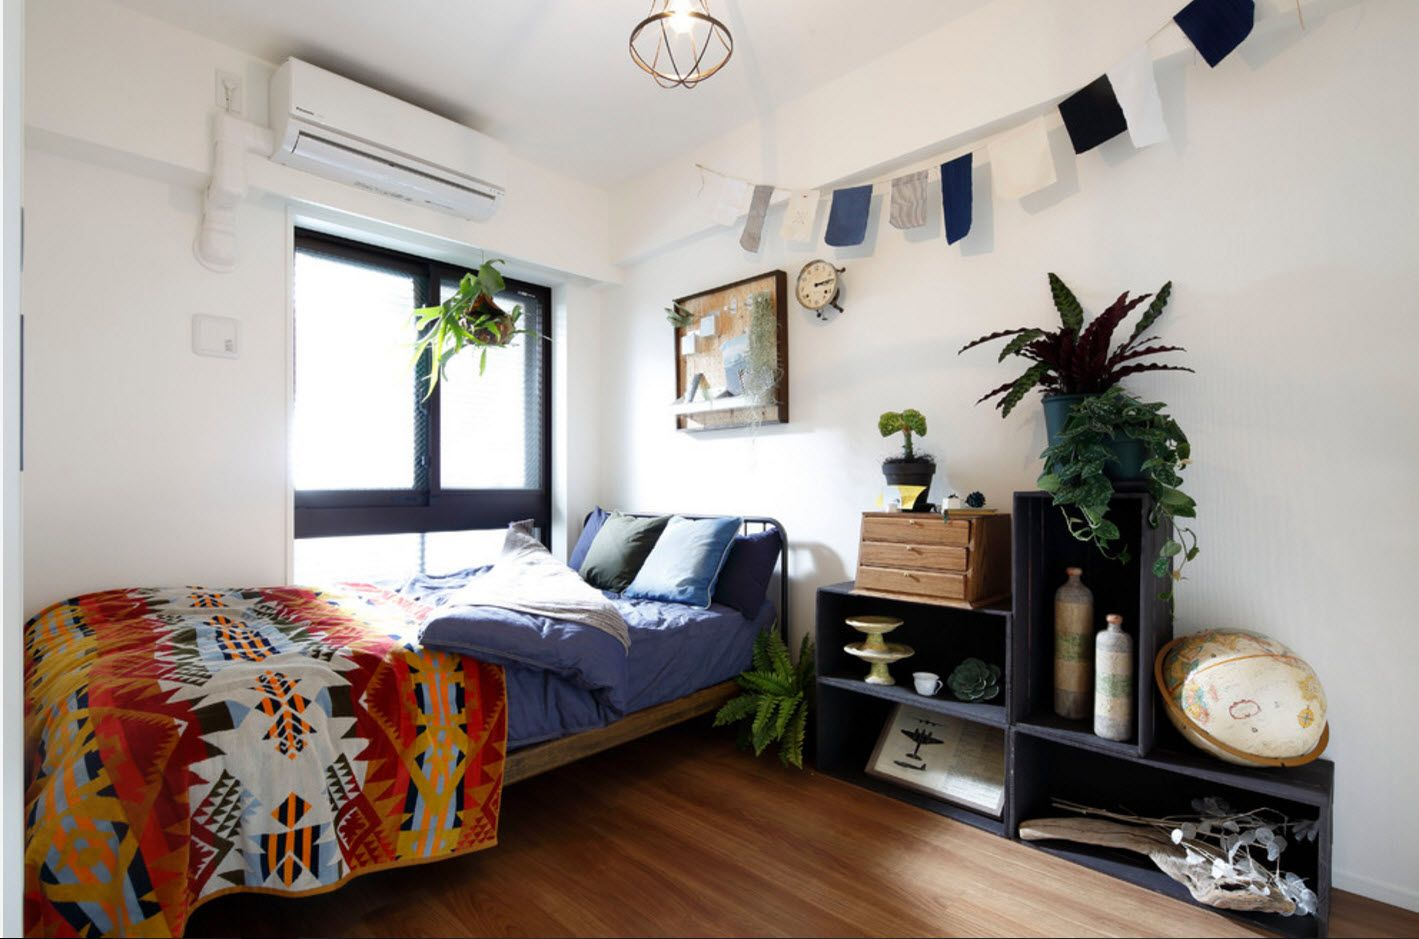 Fresh Marine and eco style mixing in the modern small bedroom with bed near the large window